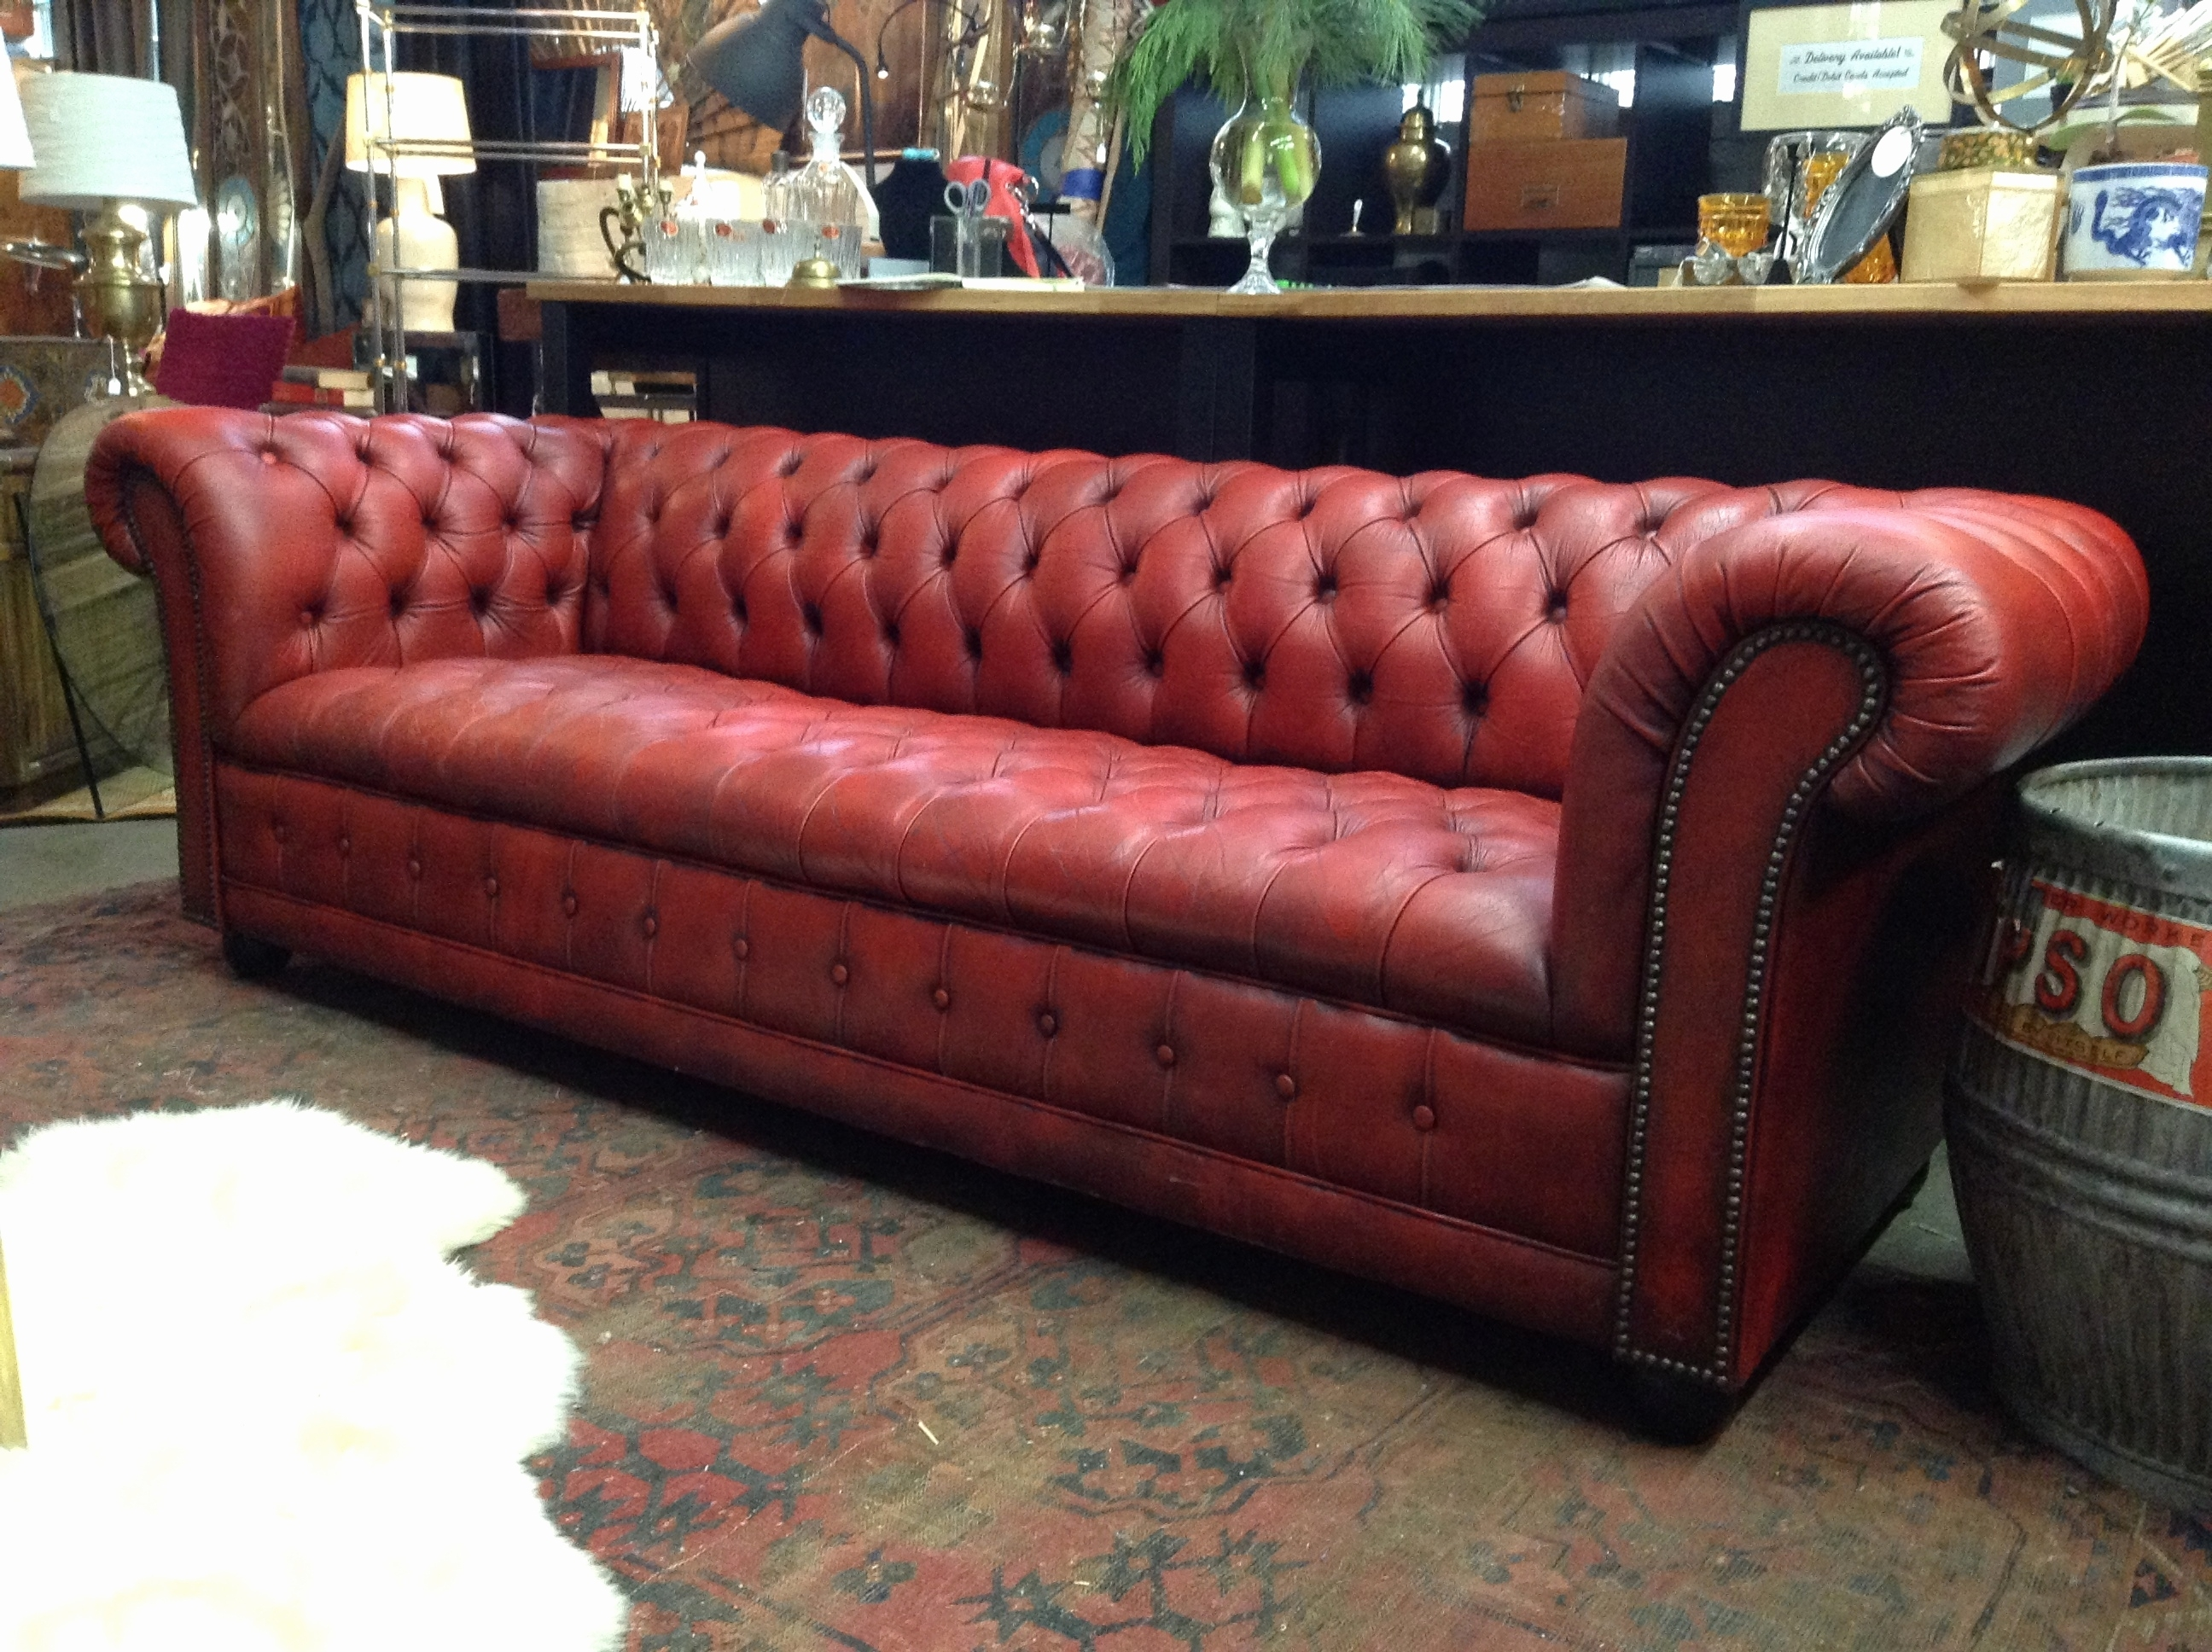 Fresh Luke Leather Sofa 2018 – Couches And Sofas Ideas with regard to Red Leather Couches and Loveseats (Image 4 of 15)